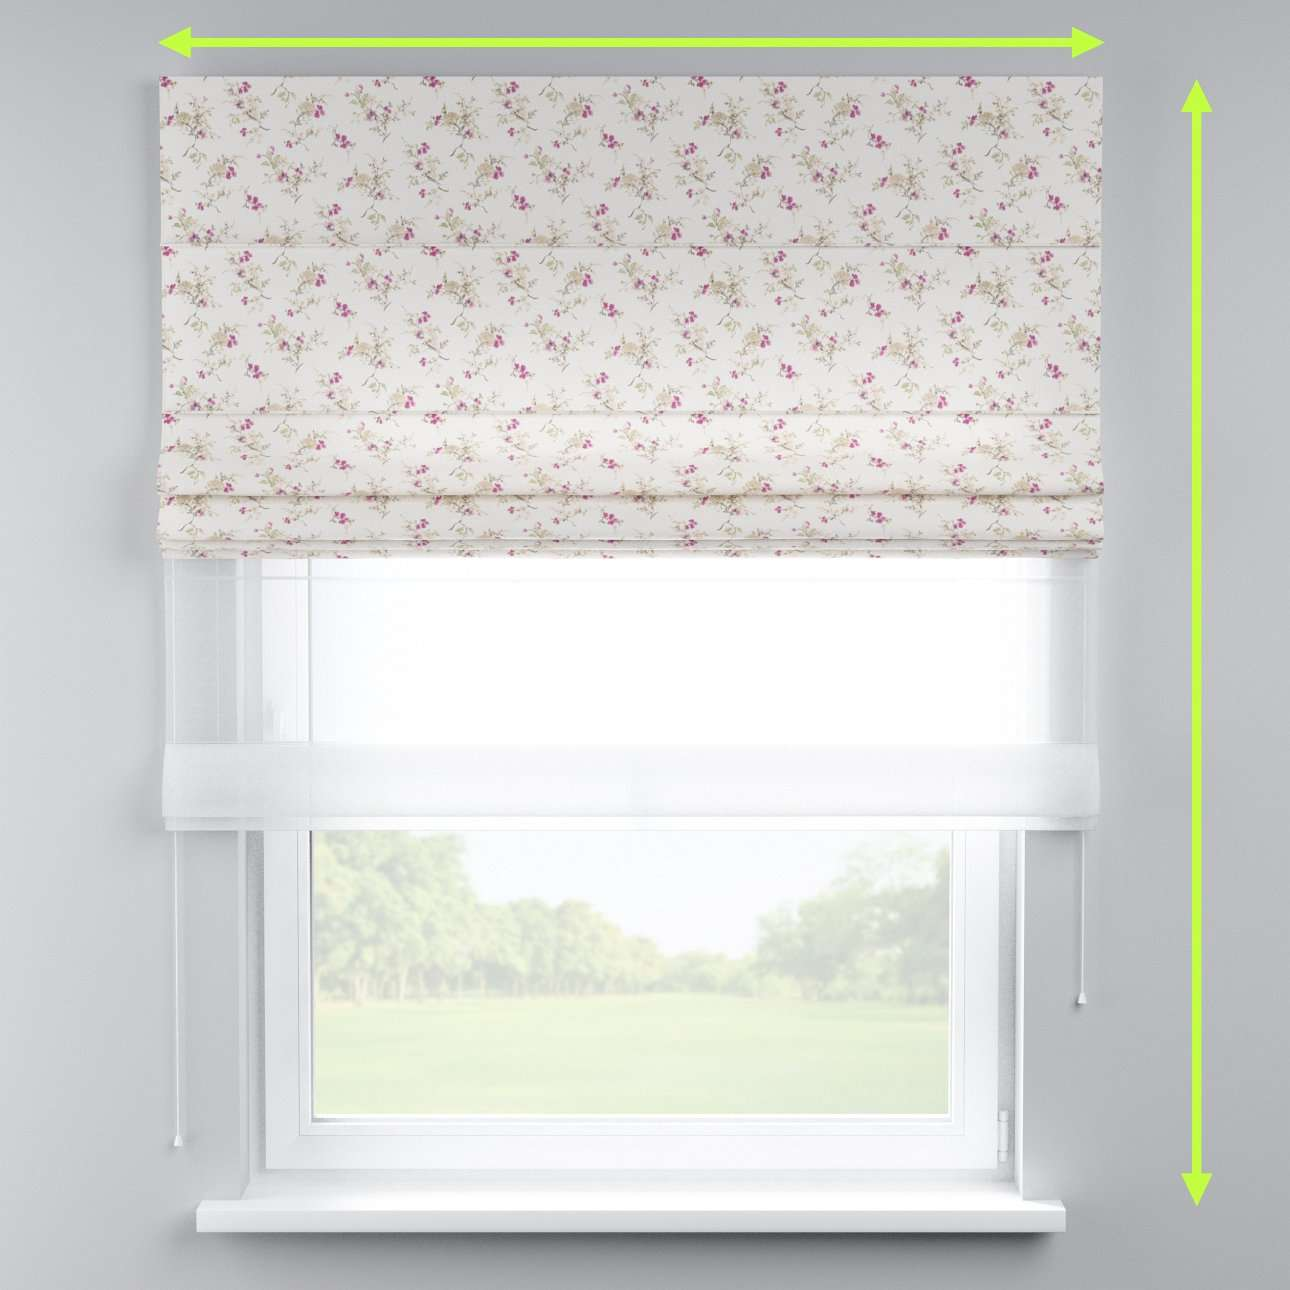 Voile and fabric roman blind (DUO II) in collection Mirella, fabric: 141-13